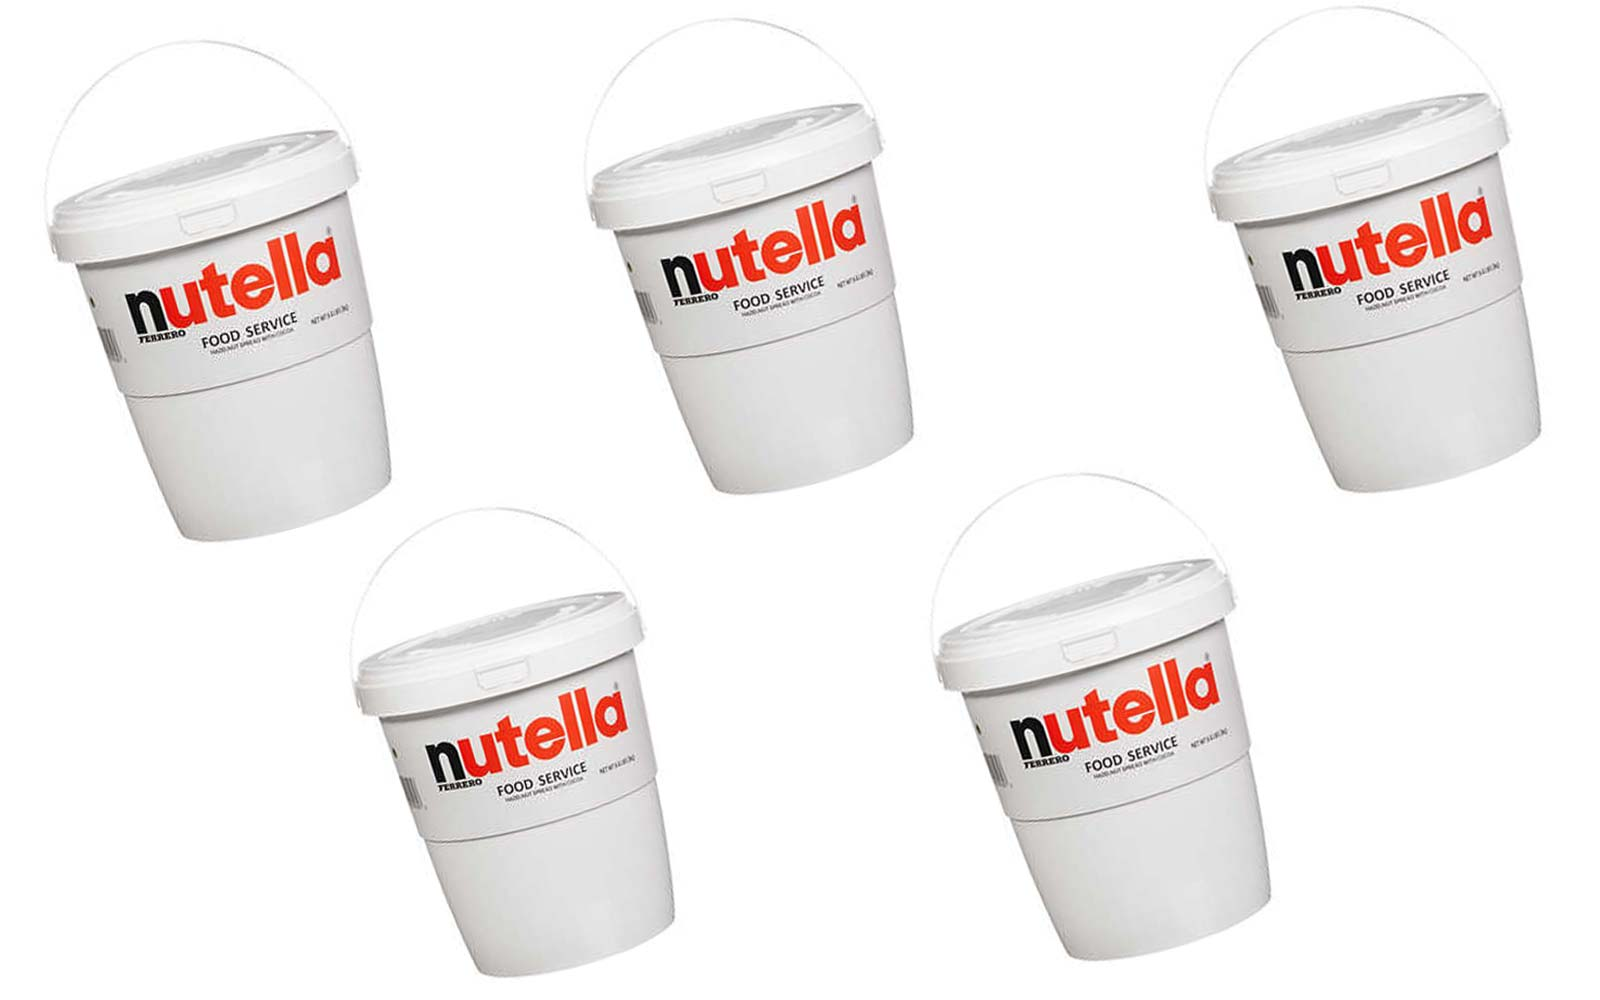 Costco Is Selling a Tub of Nutella That Weighs Almost 7 Pounds